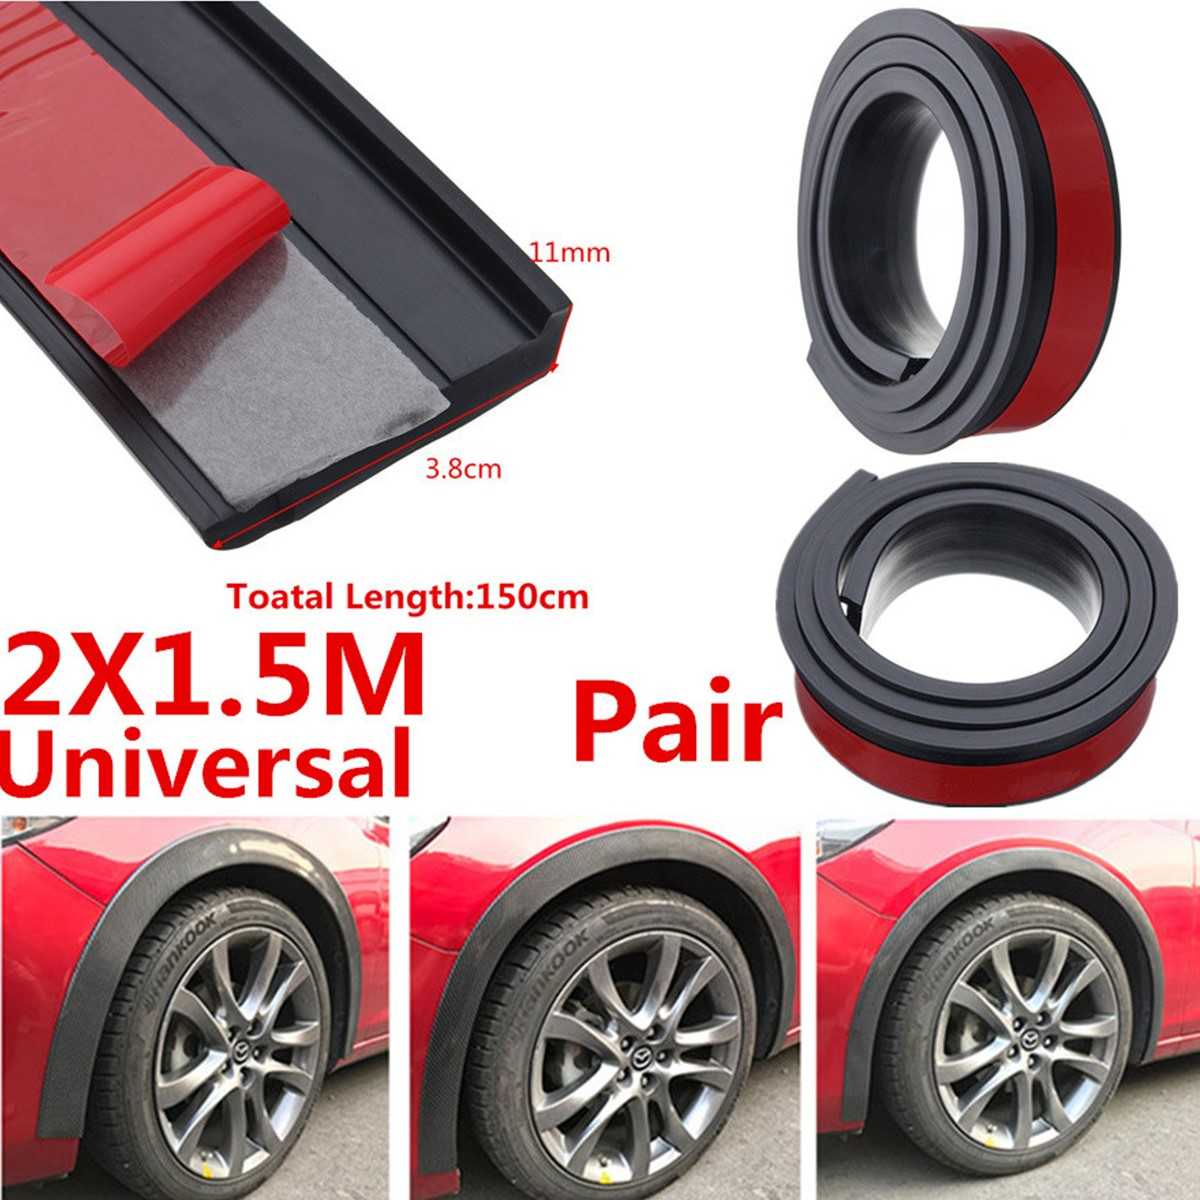 2X 4.5cm//1.5M Width Car Fender Flare Wheel Eyebrow Trim Protector Lip Universal